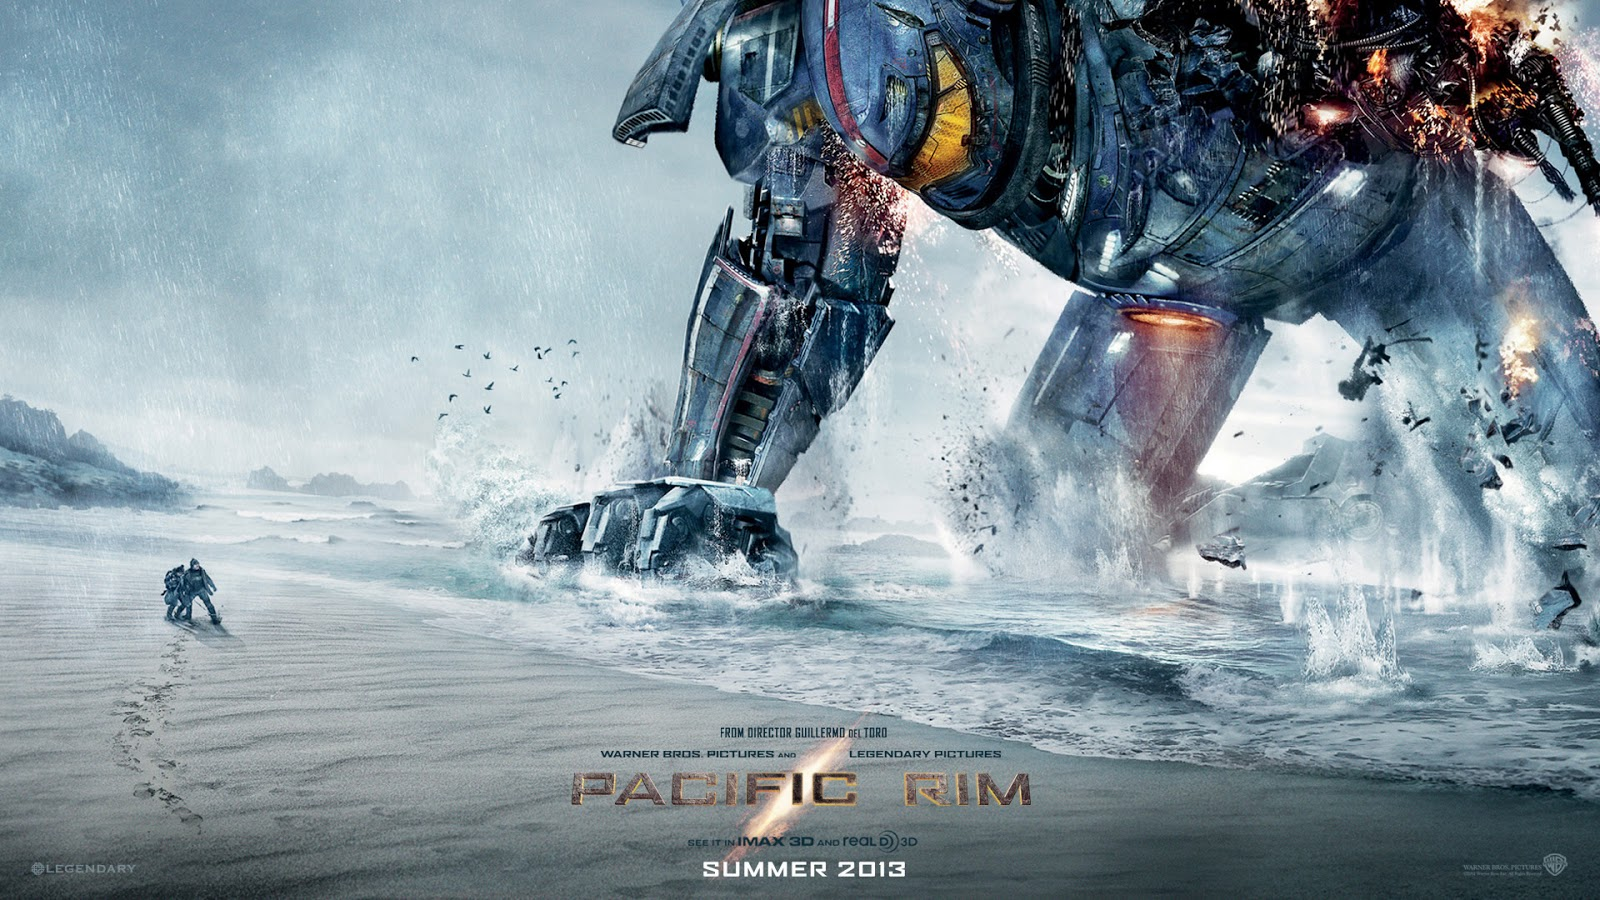 Robot 2 0 Movie Hd Wallpapers Download Free 1080p: Pacific Rim HD Wallpapers 1080p